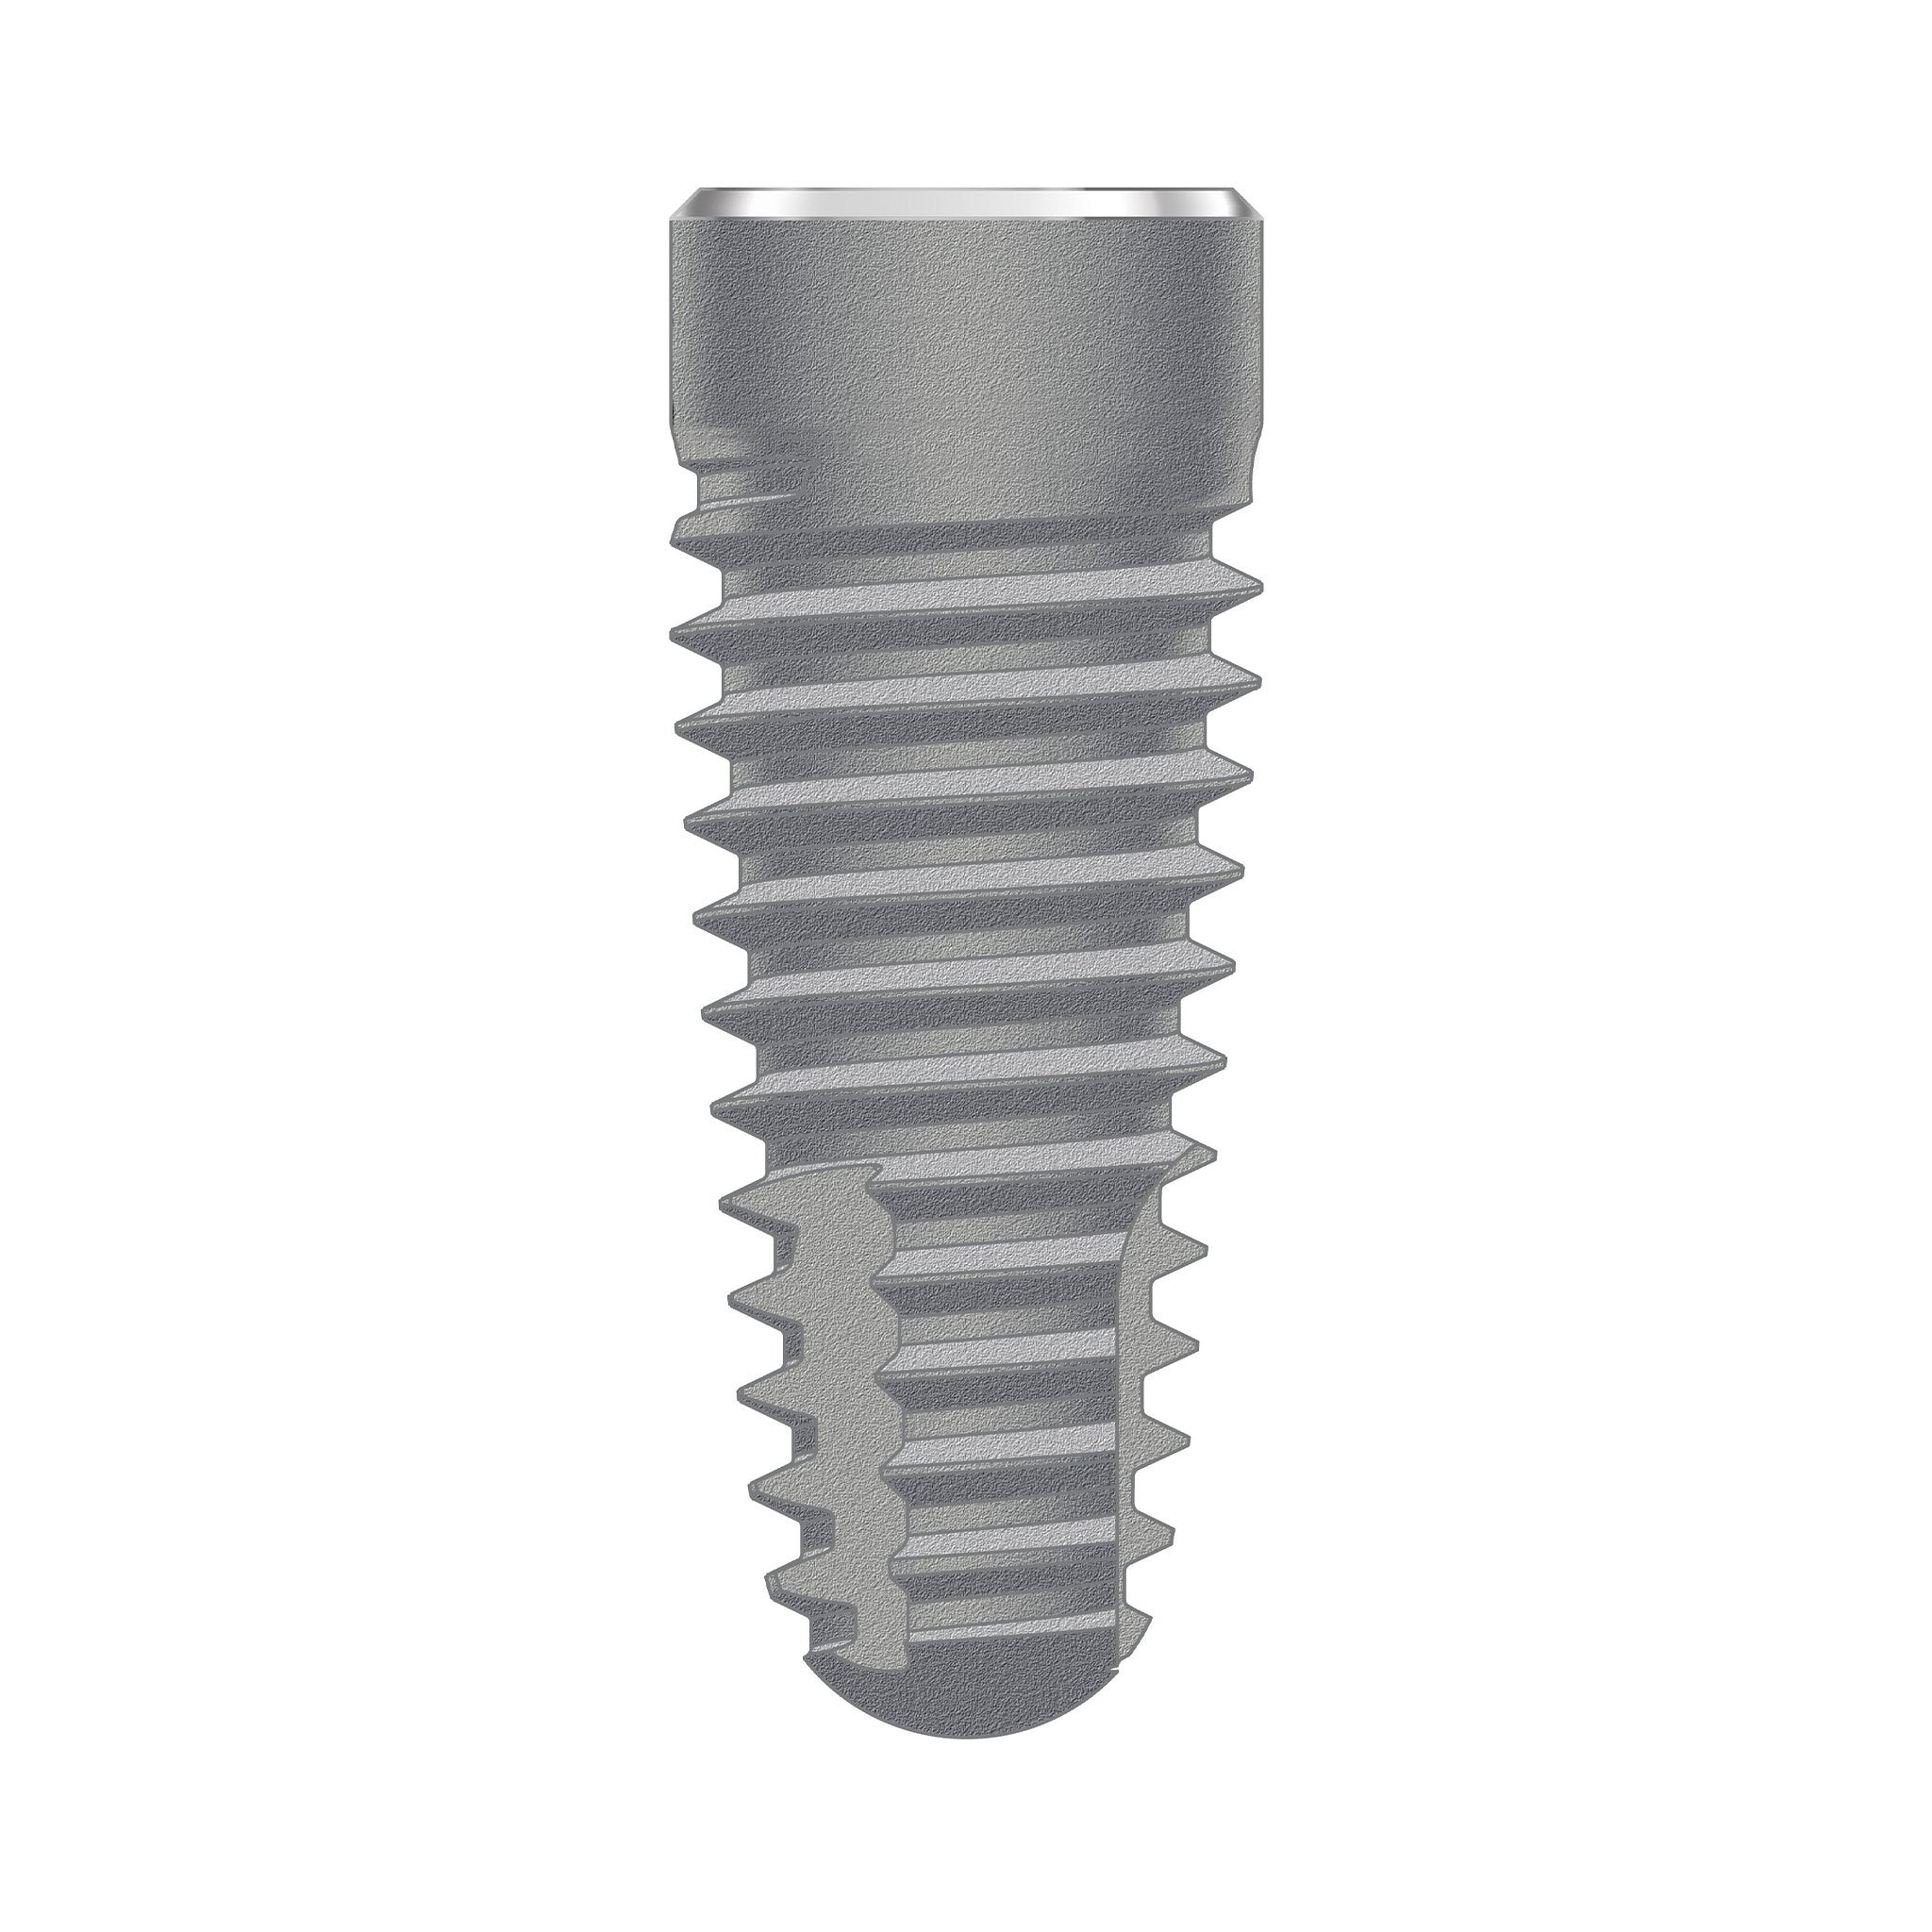 PrimaConnex® TC Tapered Implant WD Ø 5.0 x 10mm | K3